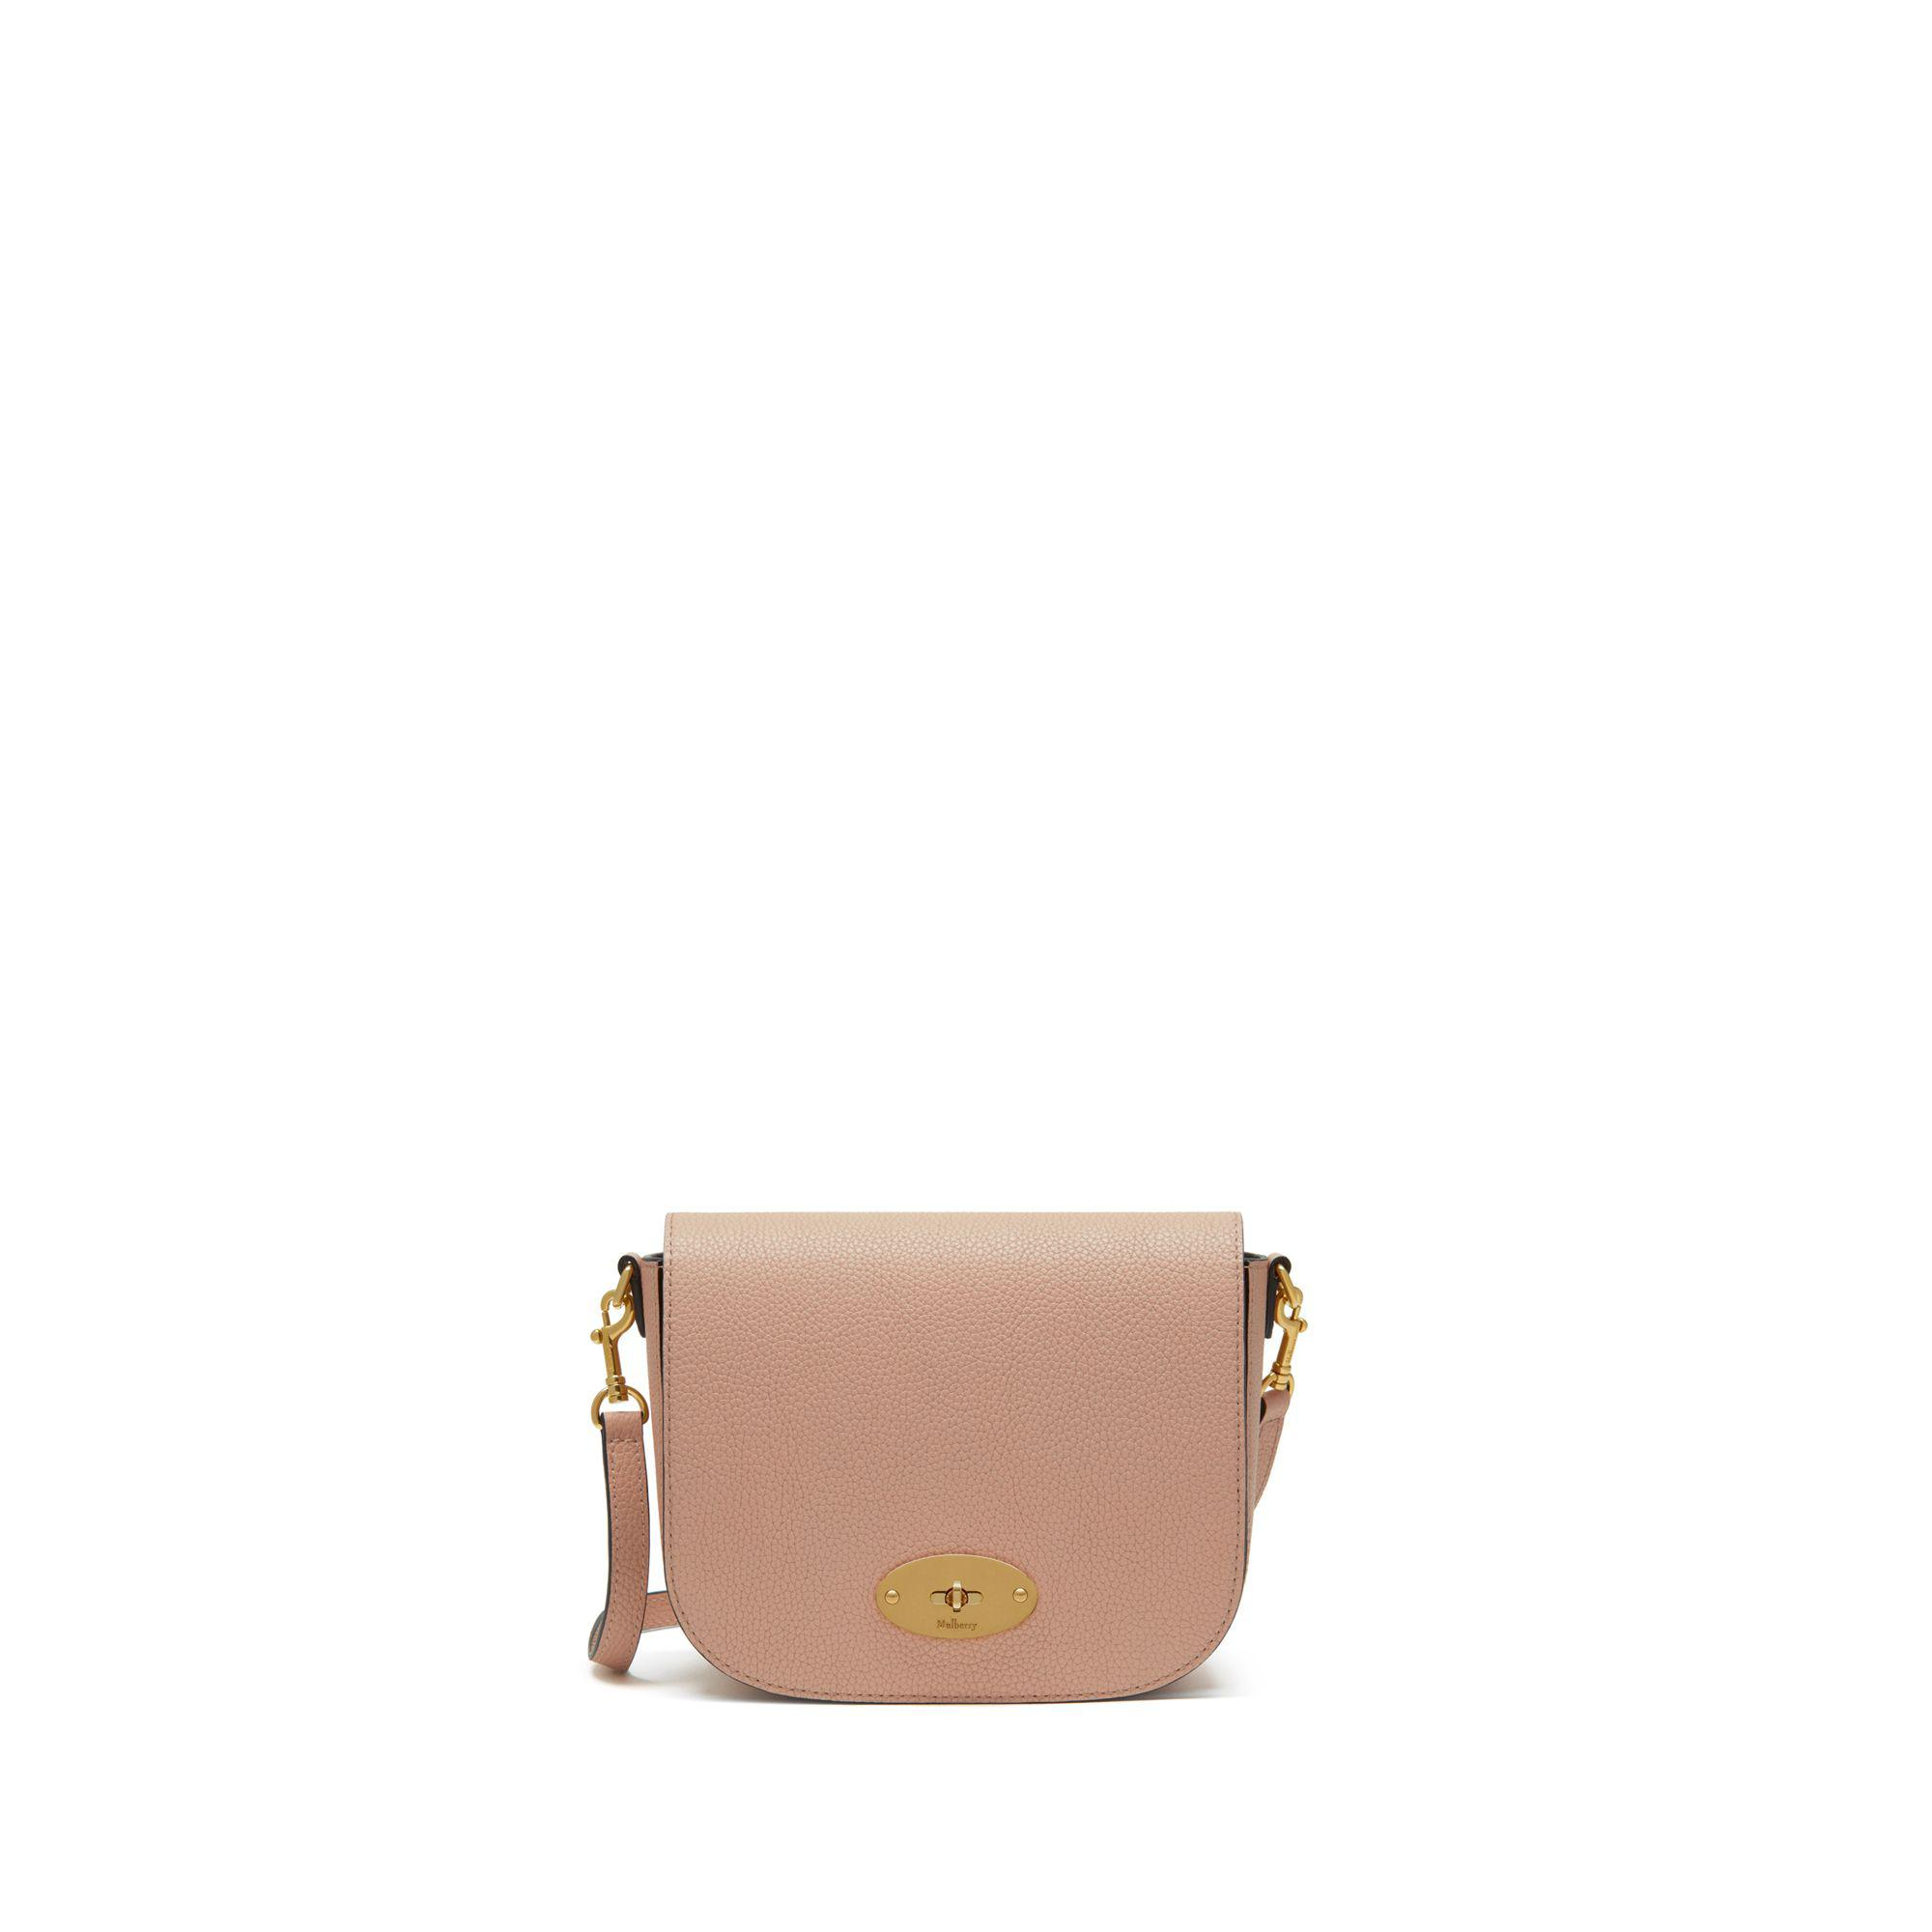 d97b89086b3b Mulberry - Multicolor Small Darley Satchel In Rosewater Small Classic Grain  - Lyst. View fullscreen